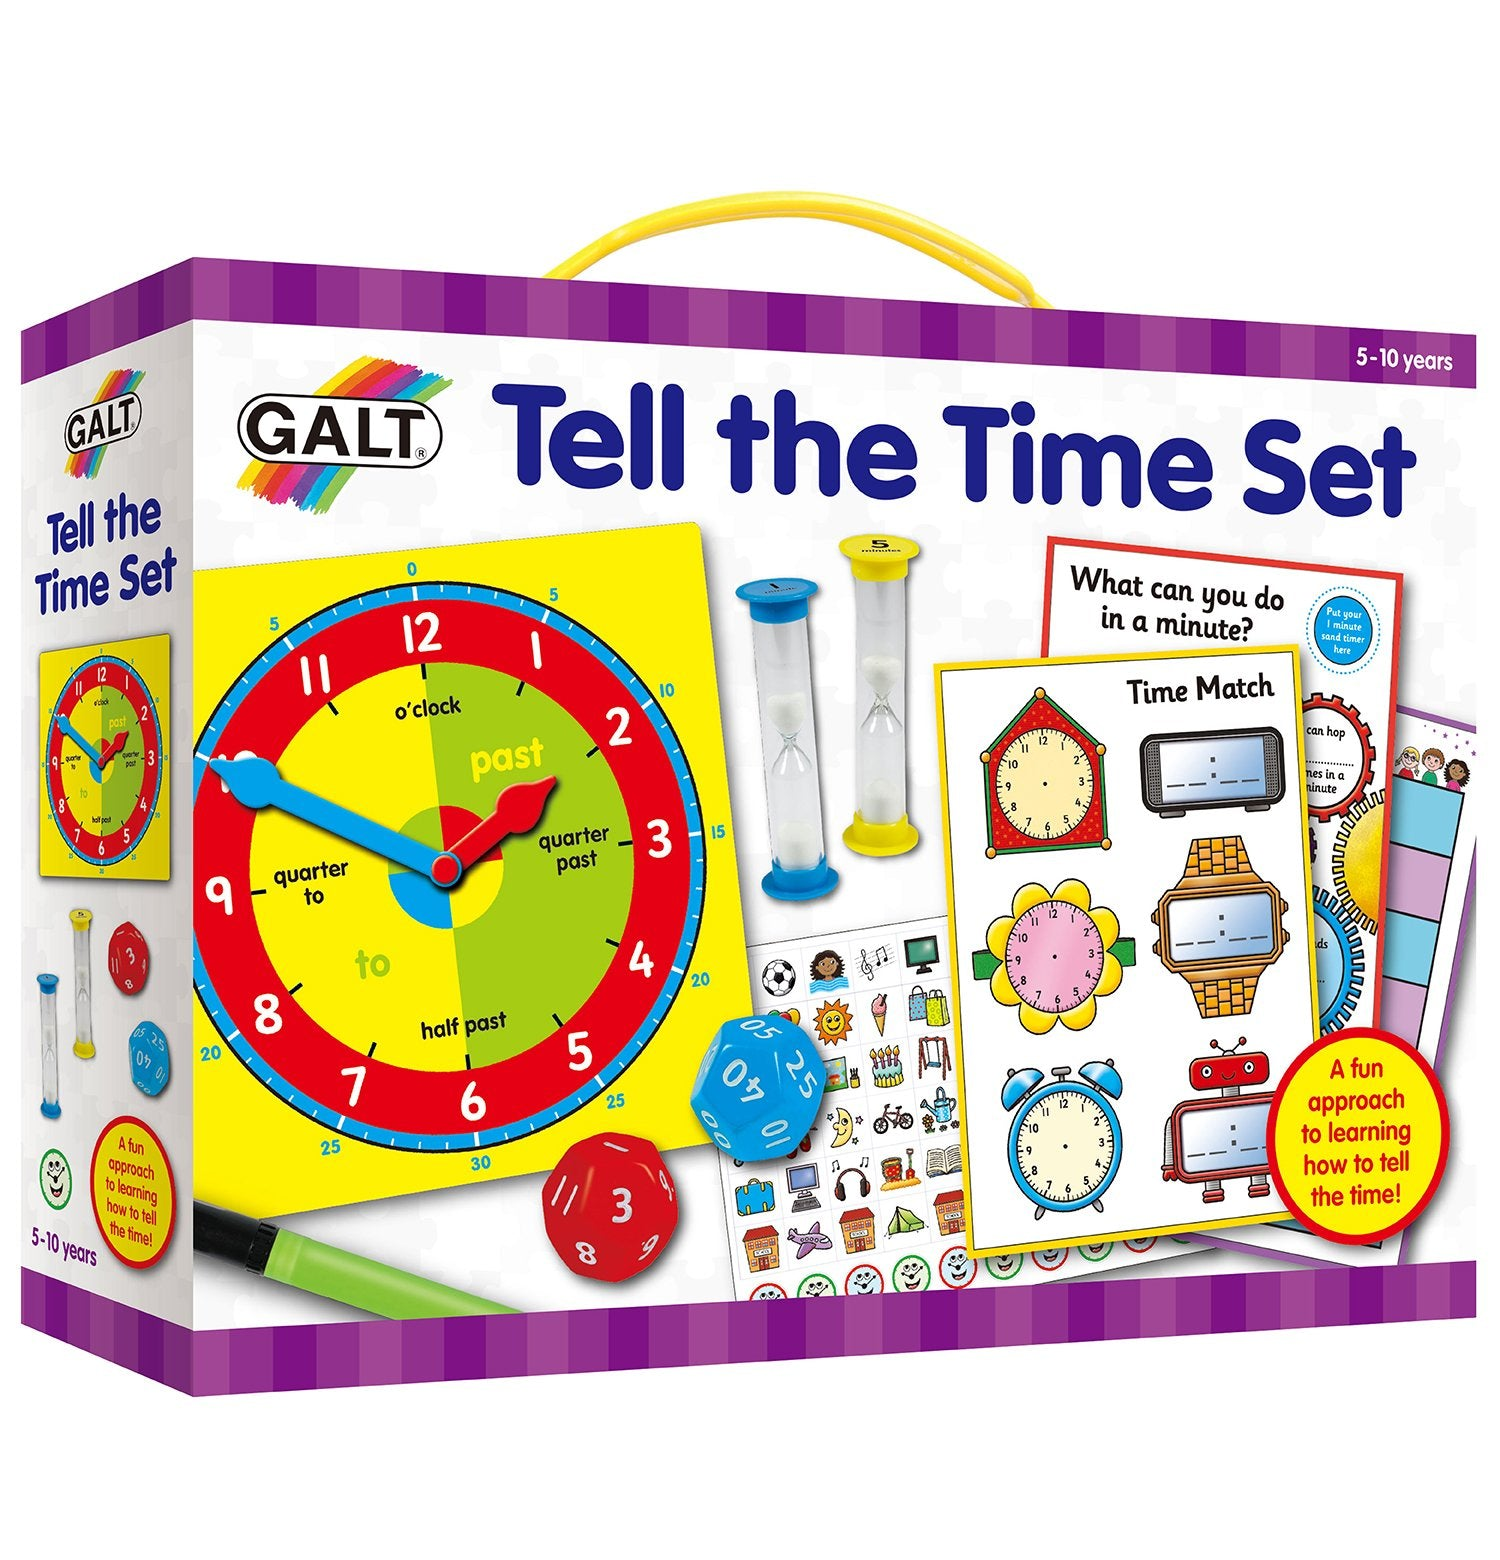 Tell the Time Set - Galt